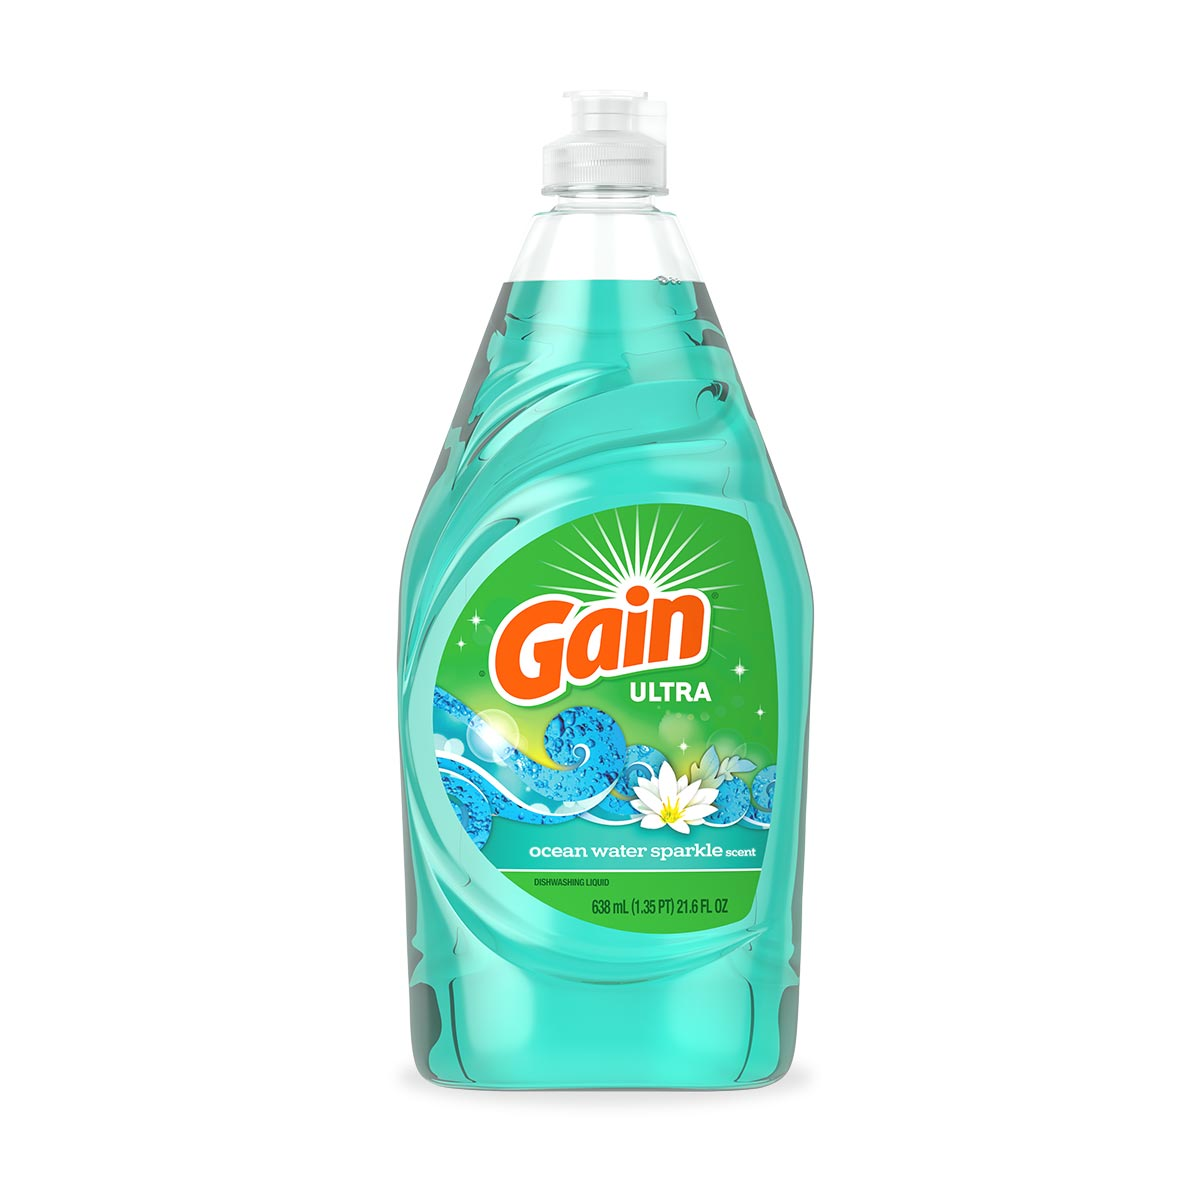 Ocean Water Sparkle Dish Soap